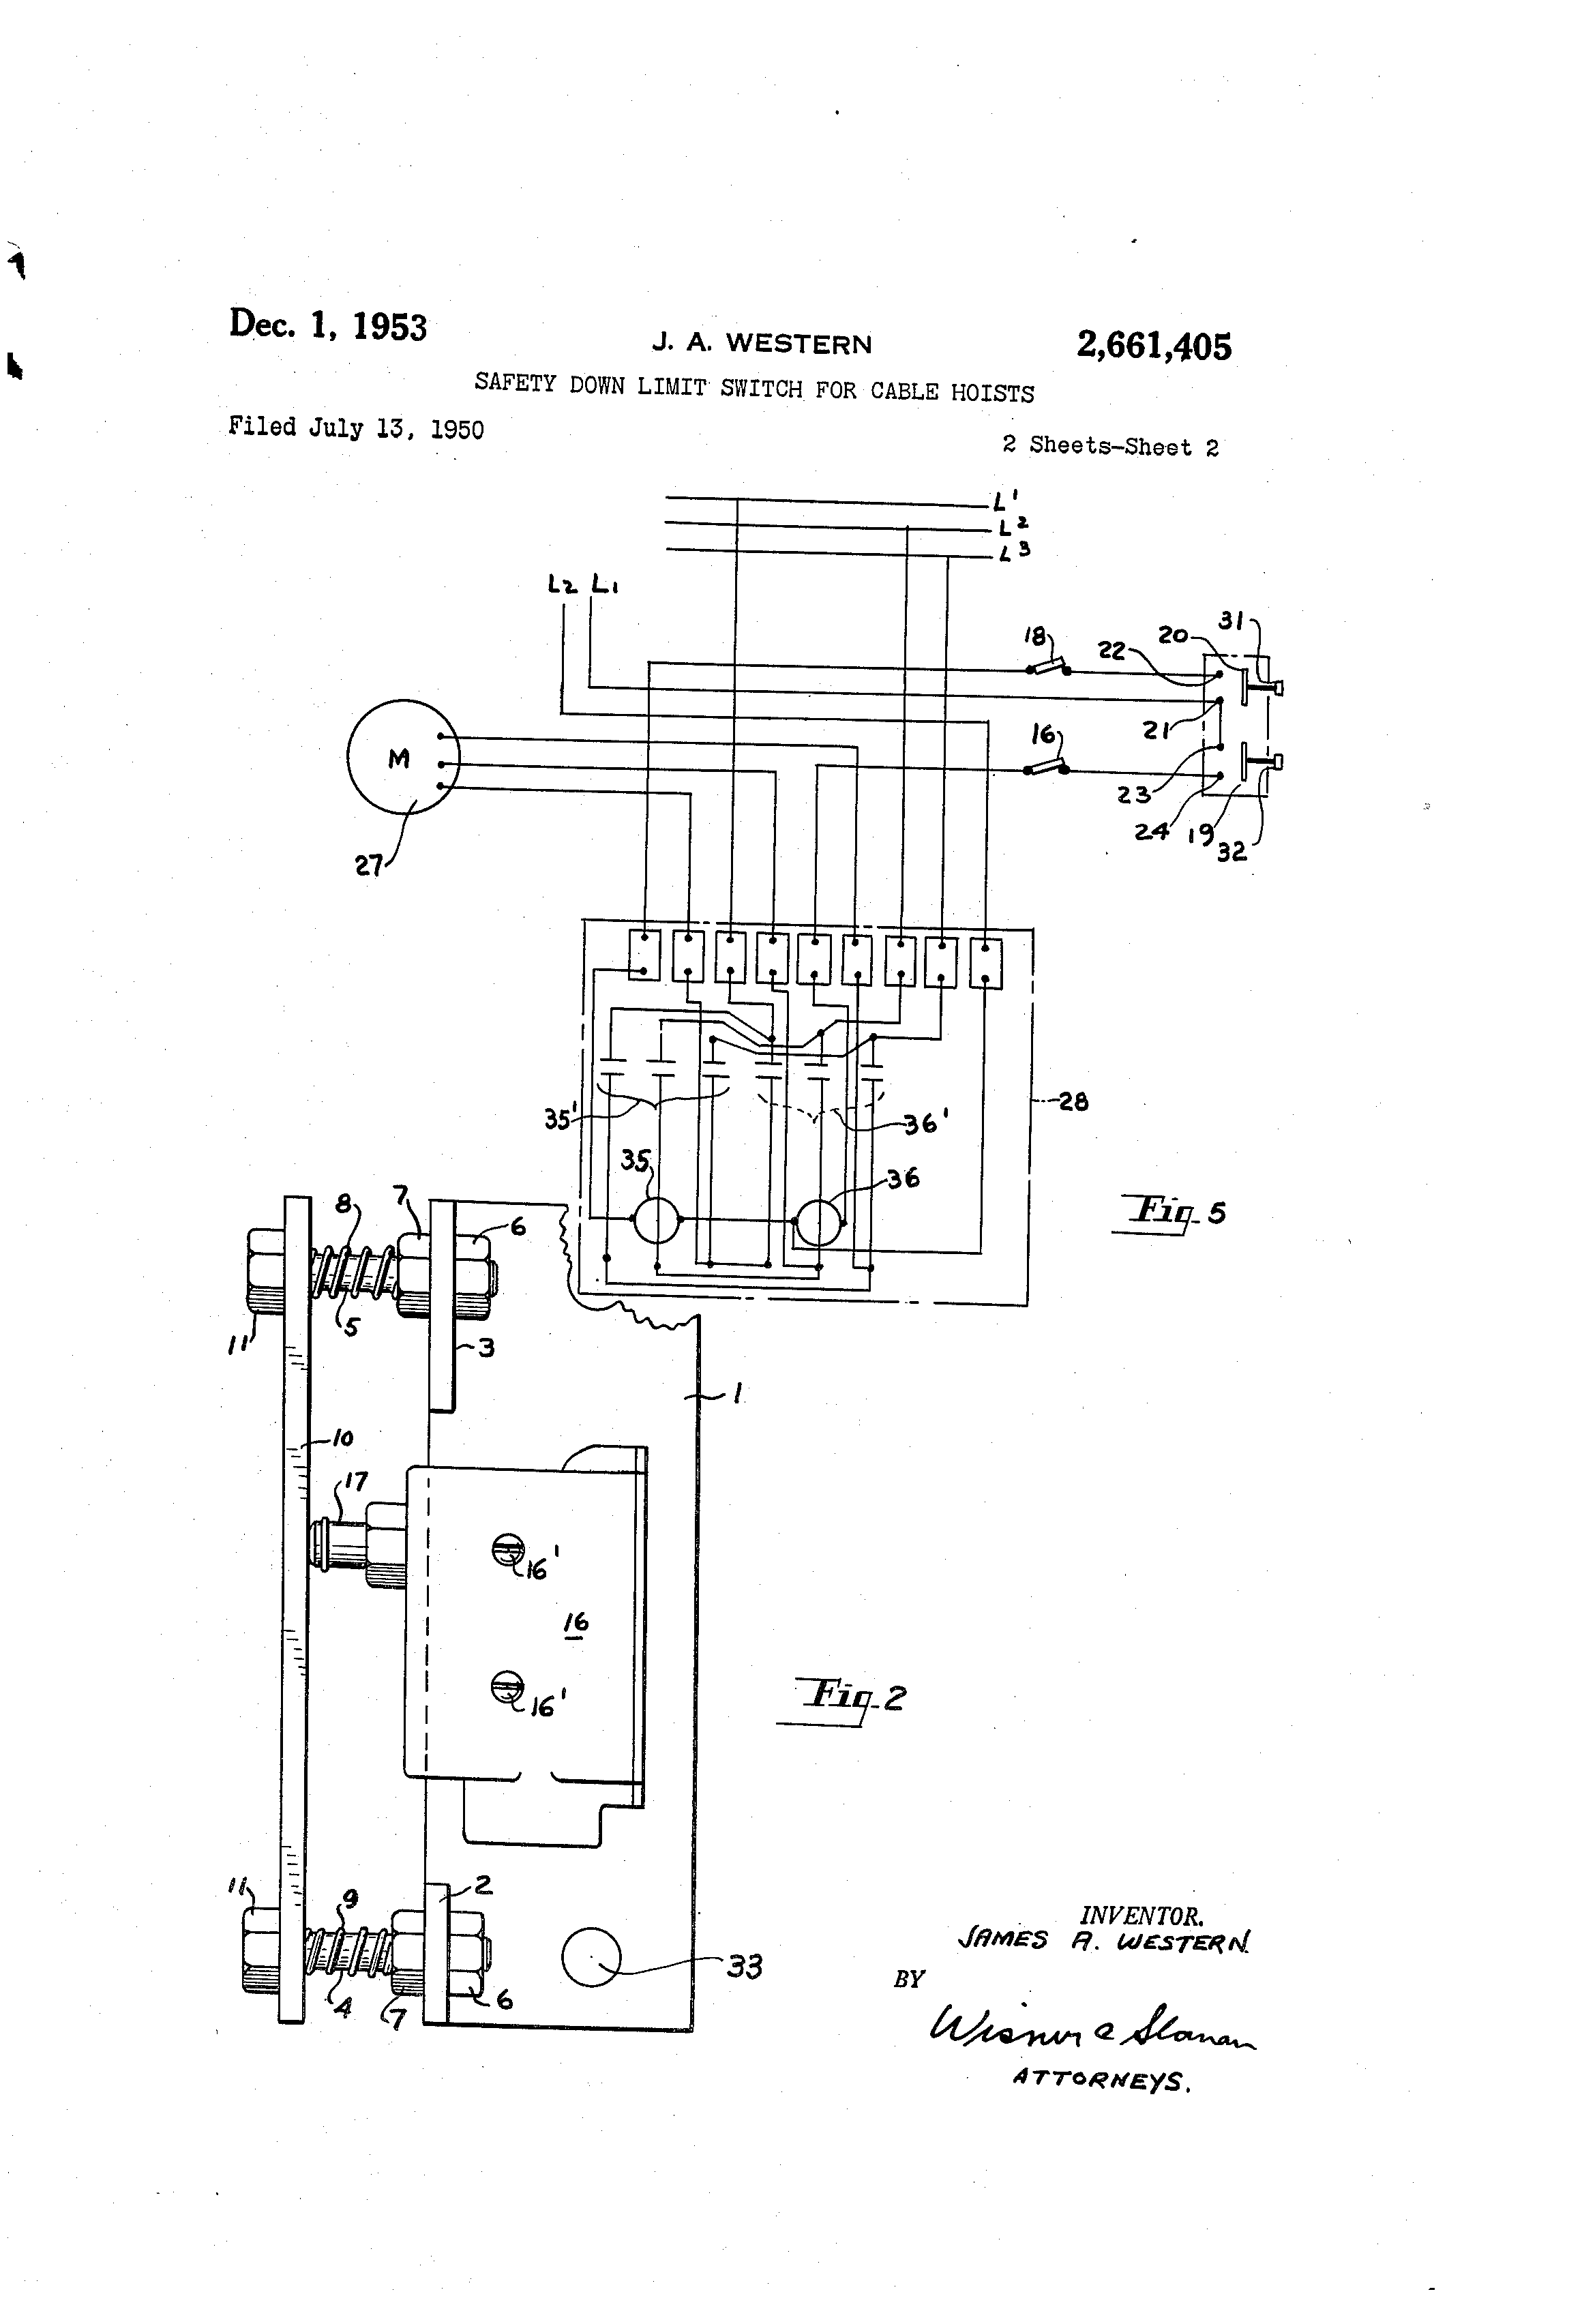 Bulldog Winch 10031 Wiring Diagram Schematics Diagrams Pierce A Remote For With Limit Switch Badlands 12000